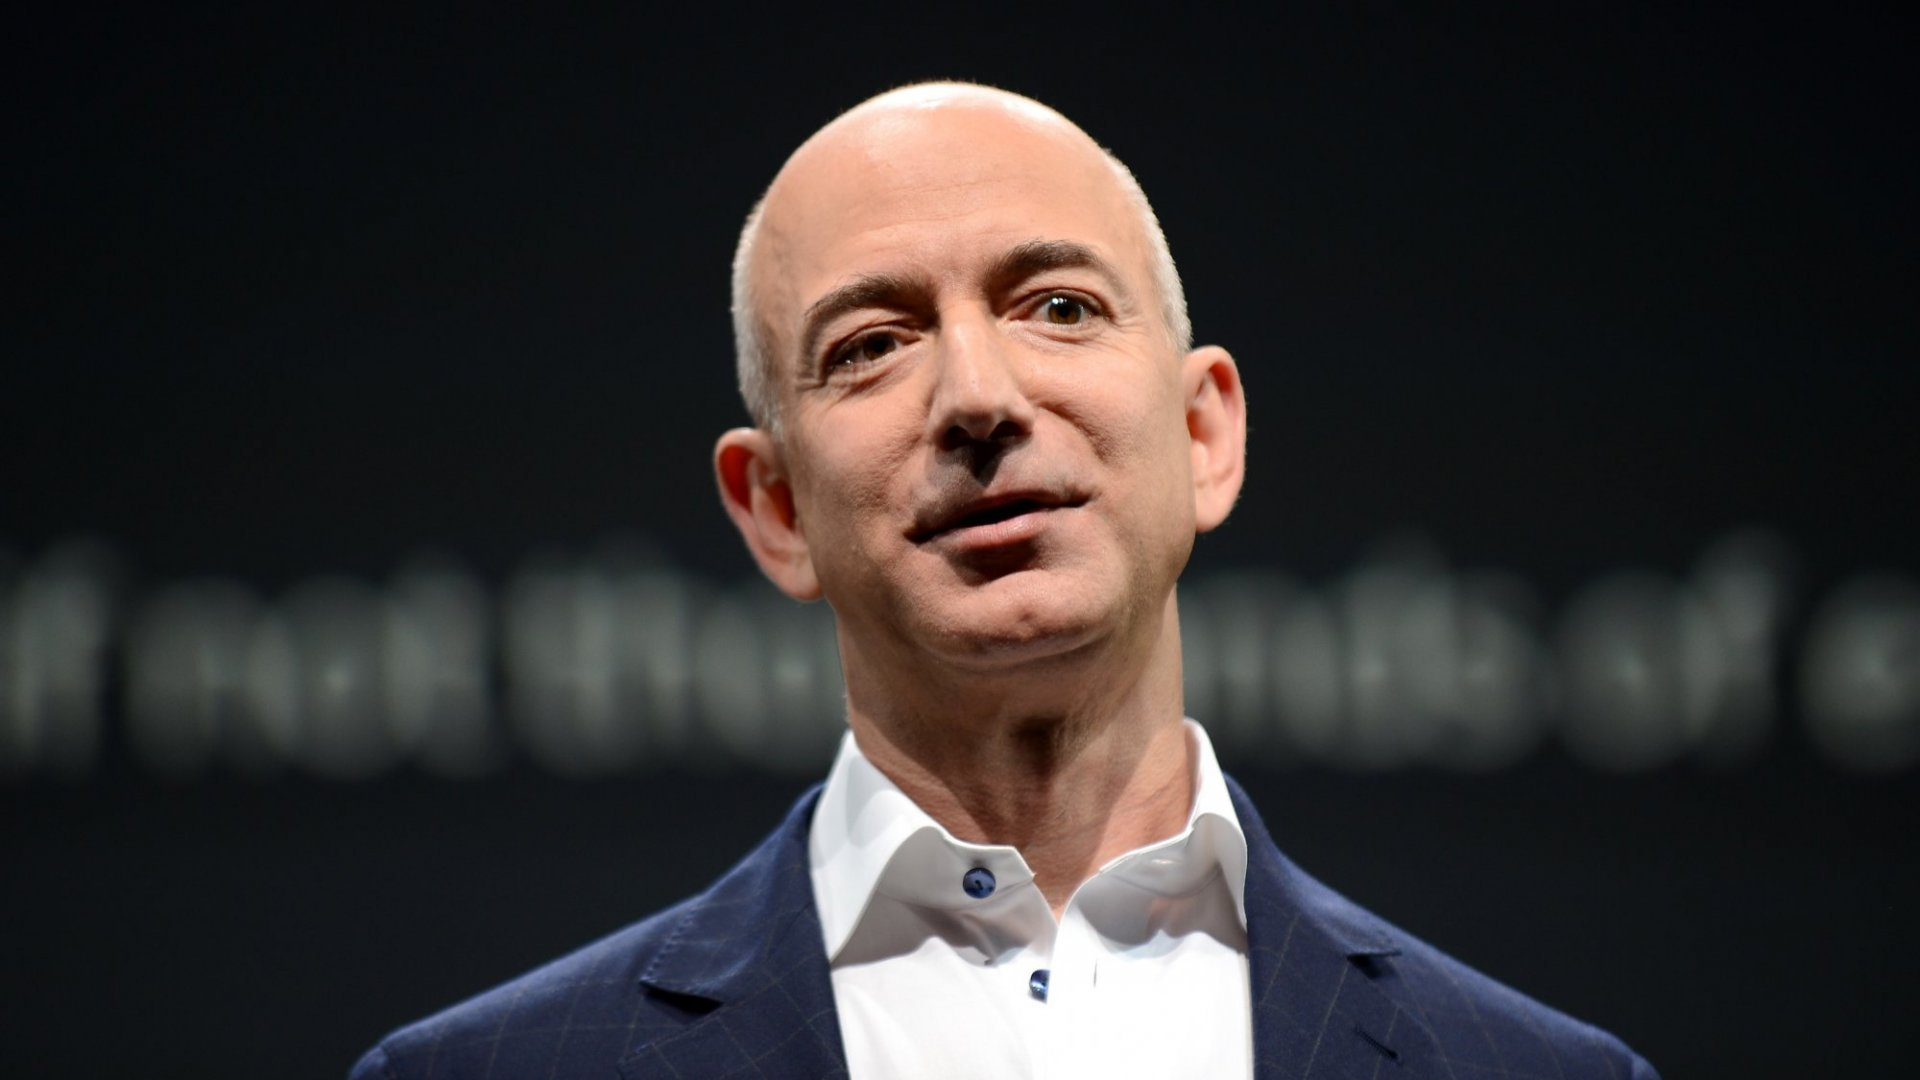 Jeff Bezos Responds to Criticism of Amazon's Working Conditions